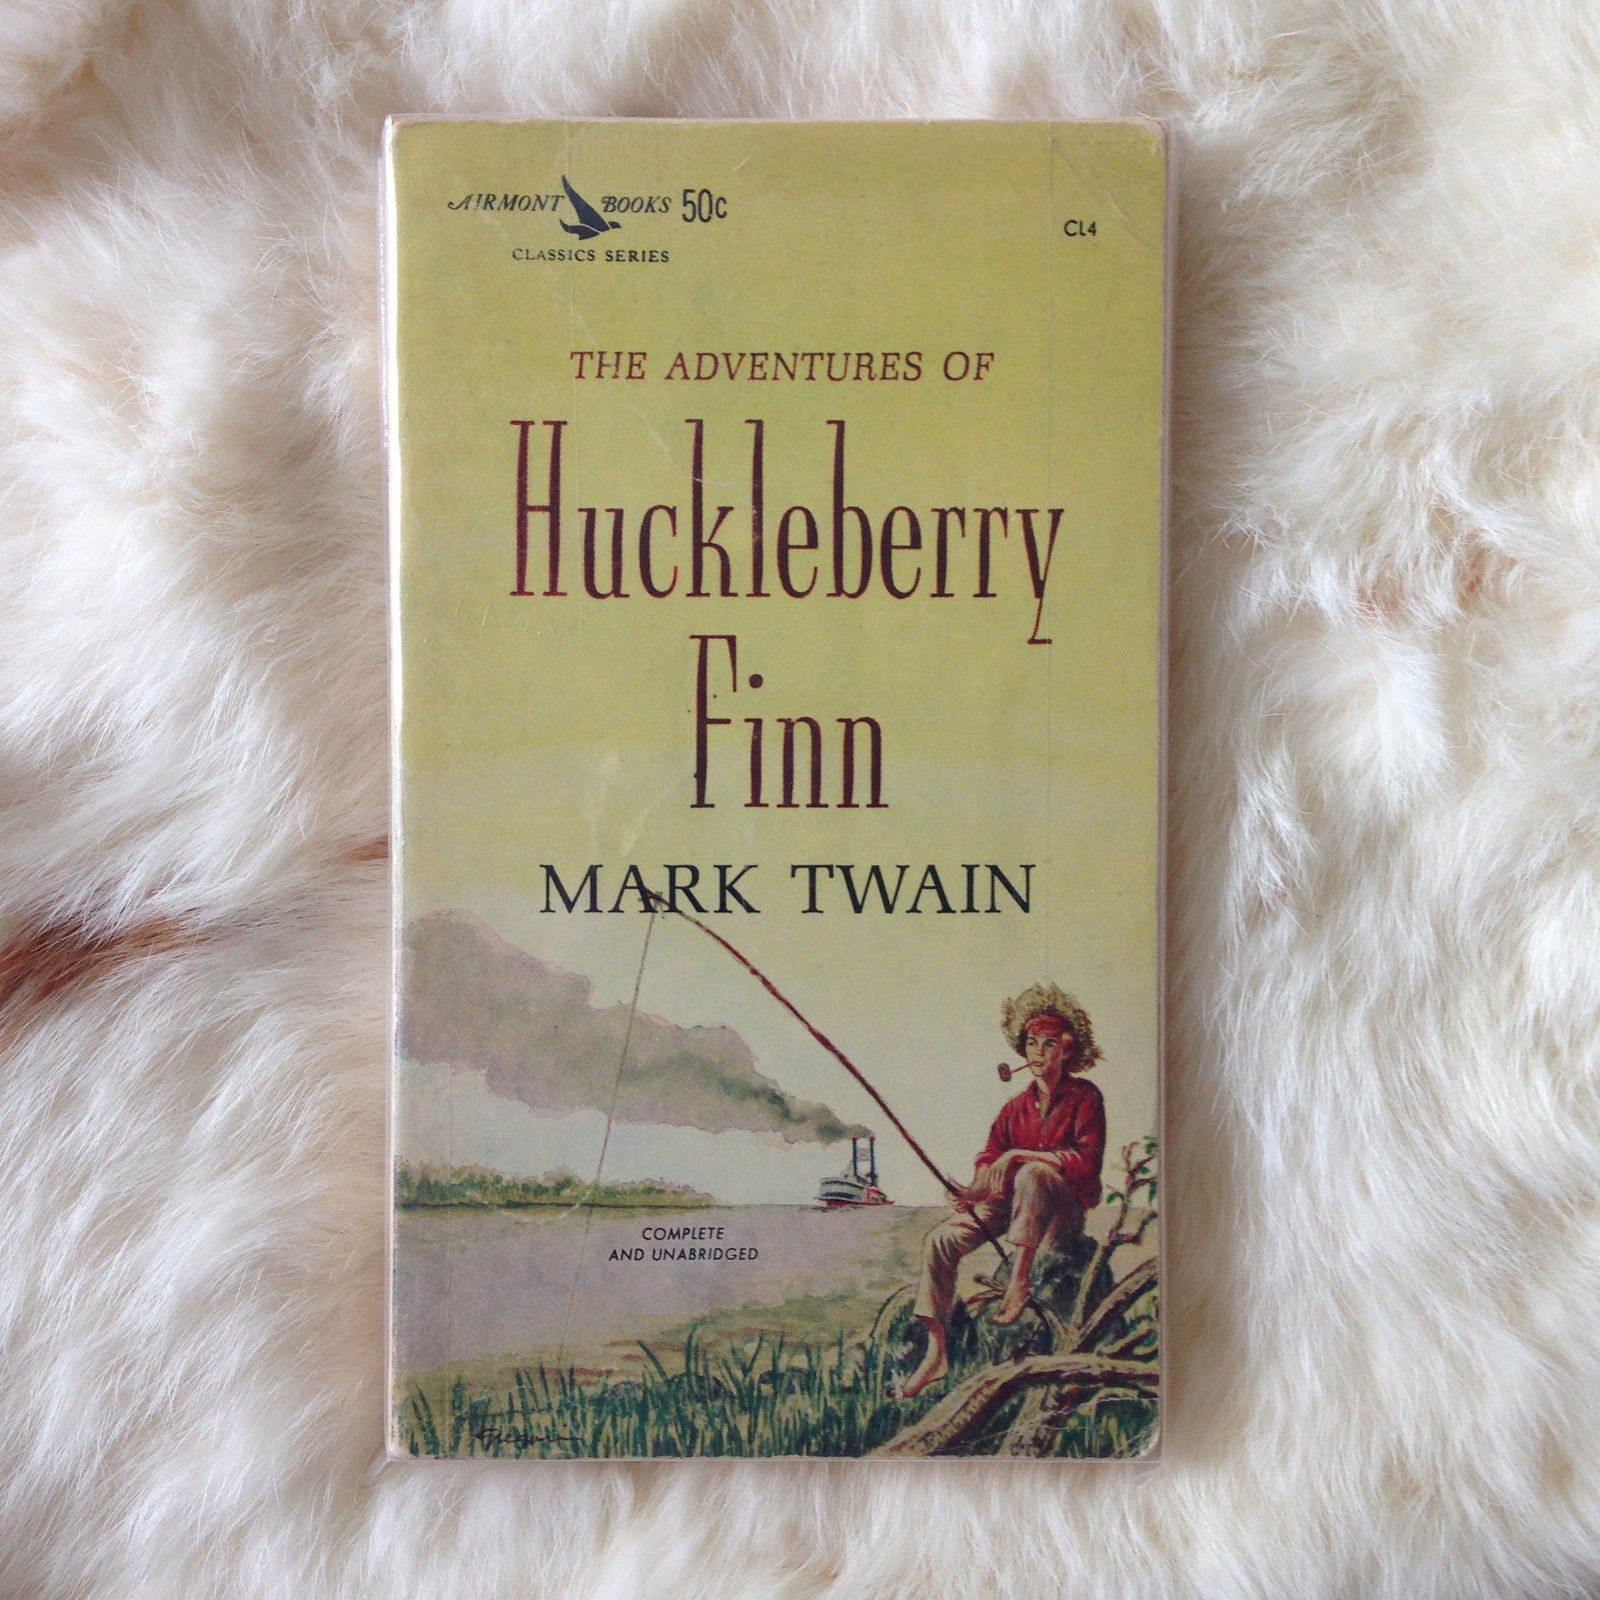 epiphany in mark twain huckleberry finn Mark twain explains his theories about writing in how to tell a story and implements them in the adventures of huckleberry finn.